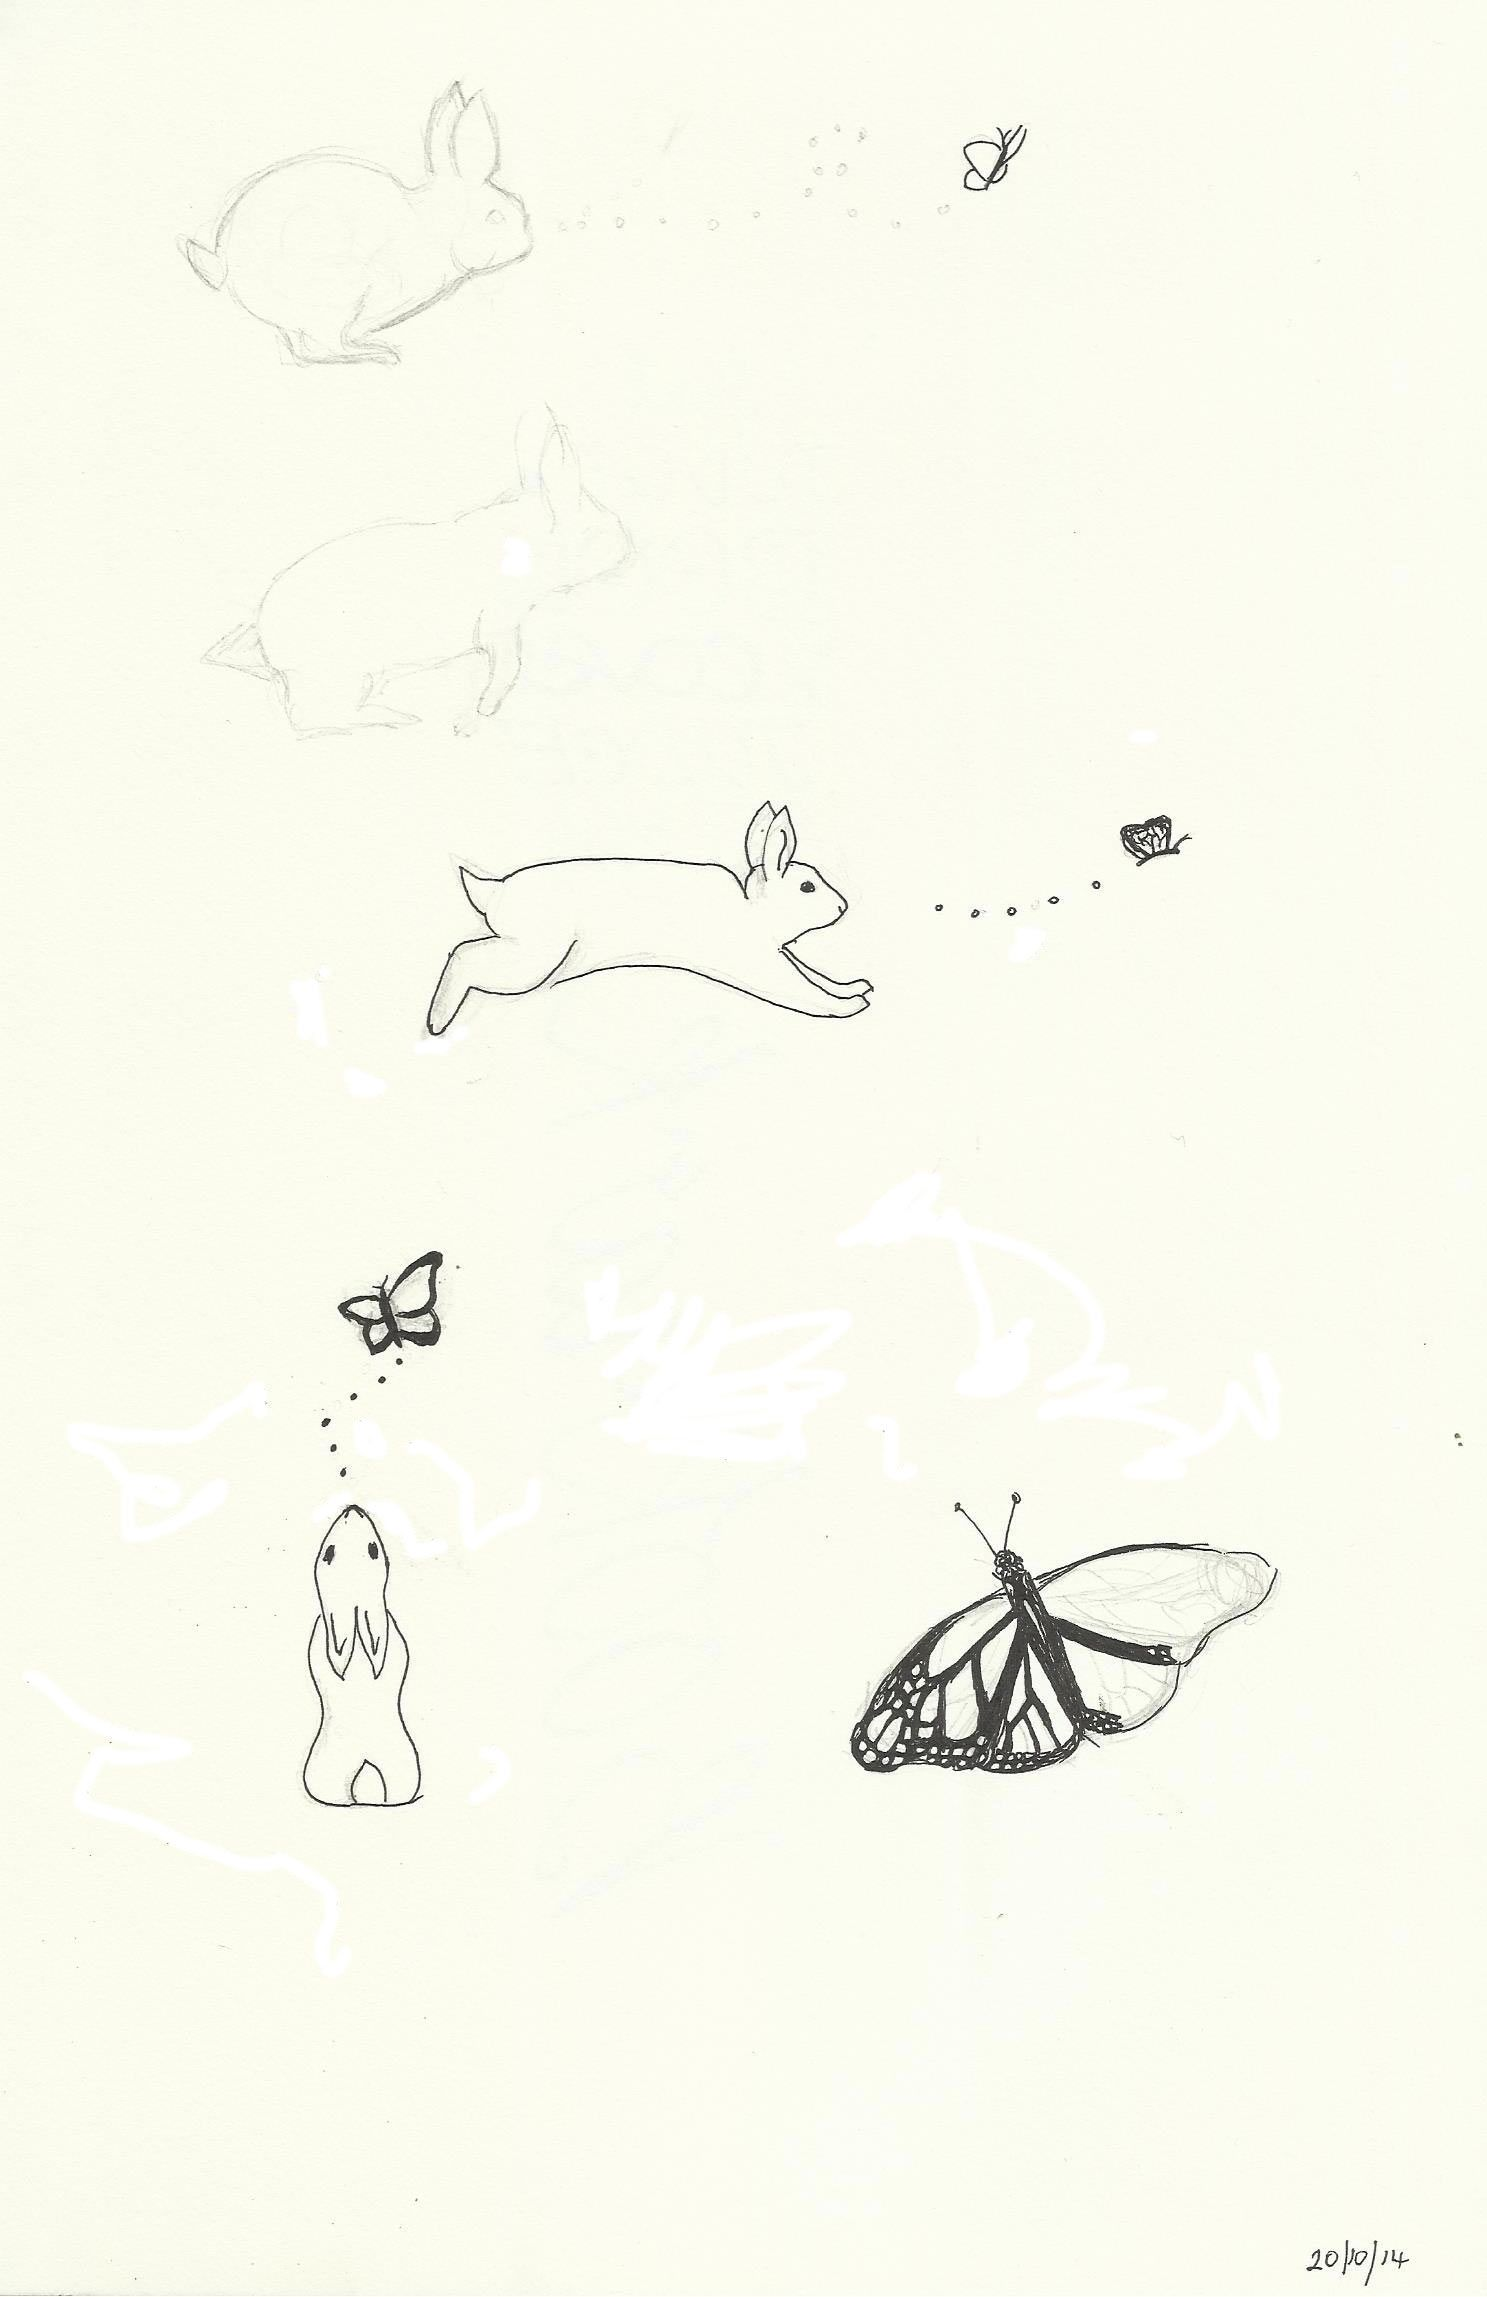 Rabbit chasing butterfly doodles - inspired by friend's idea for their tattoo